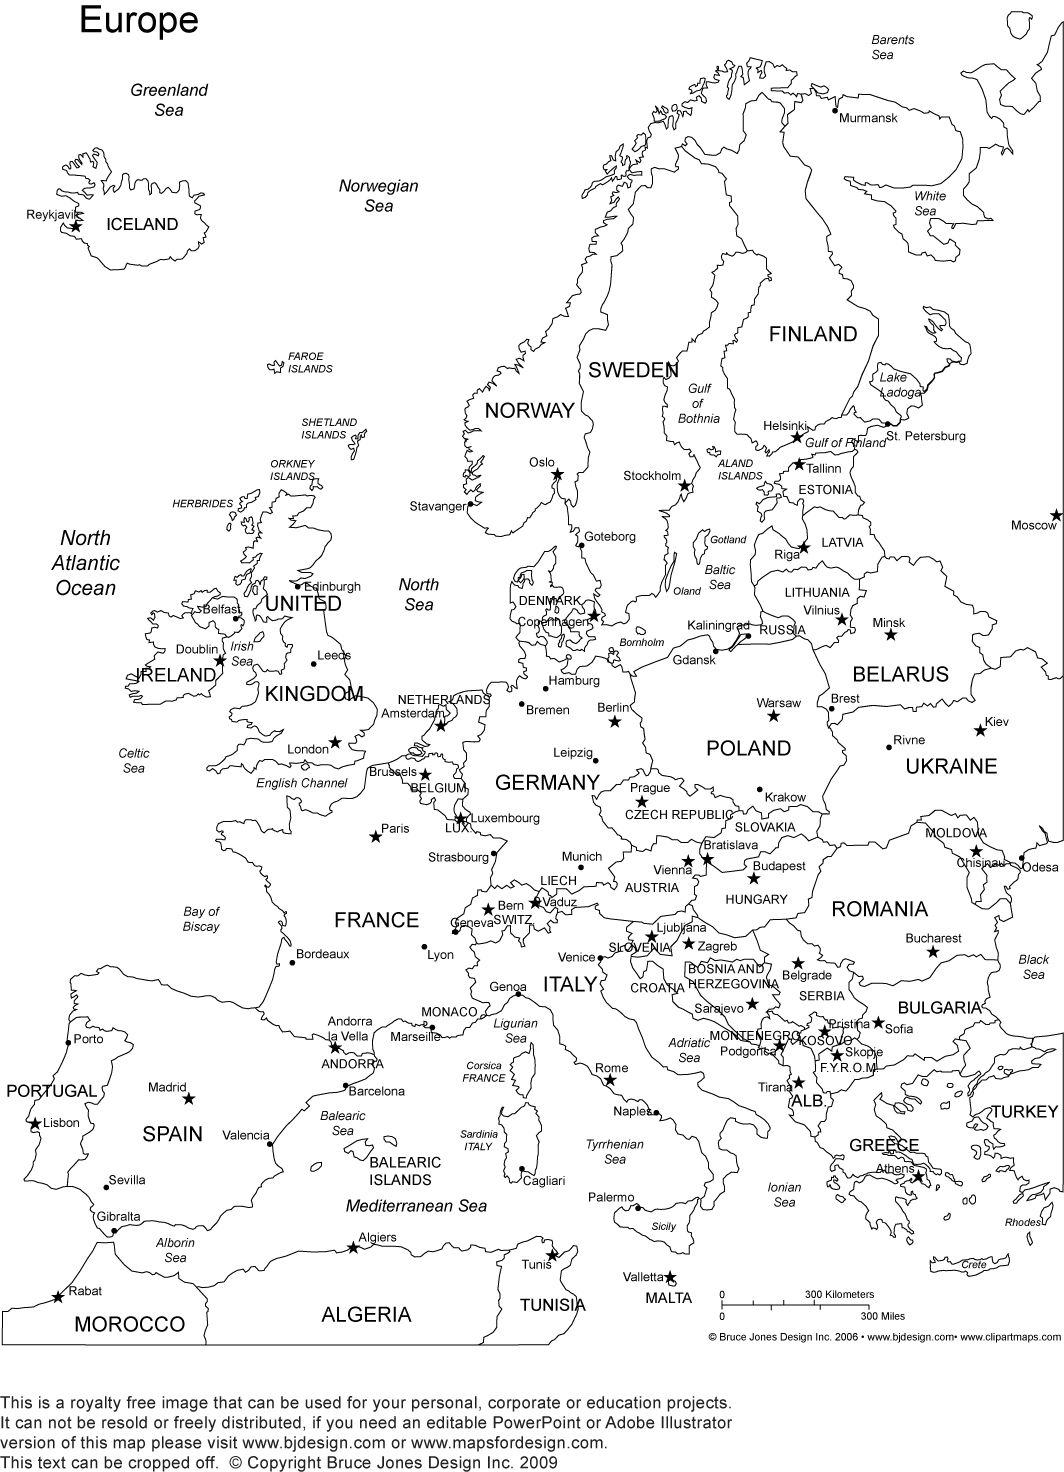 Europe Printable Blank Map Royalty